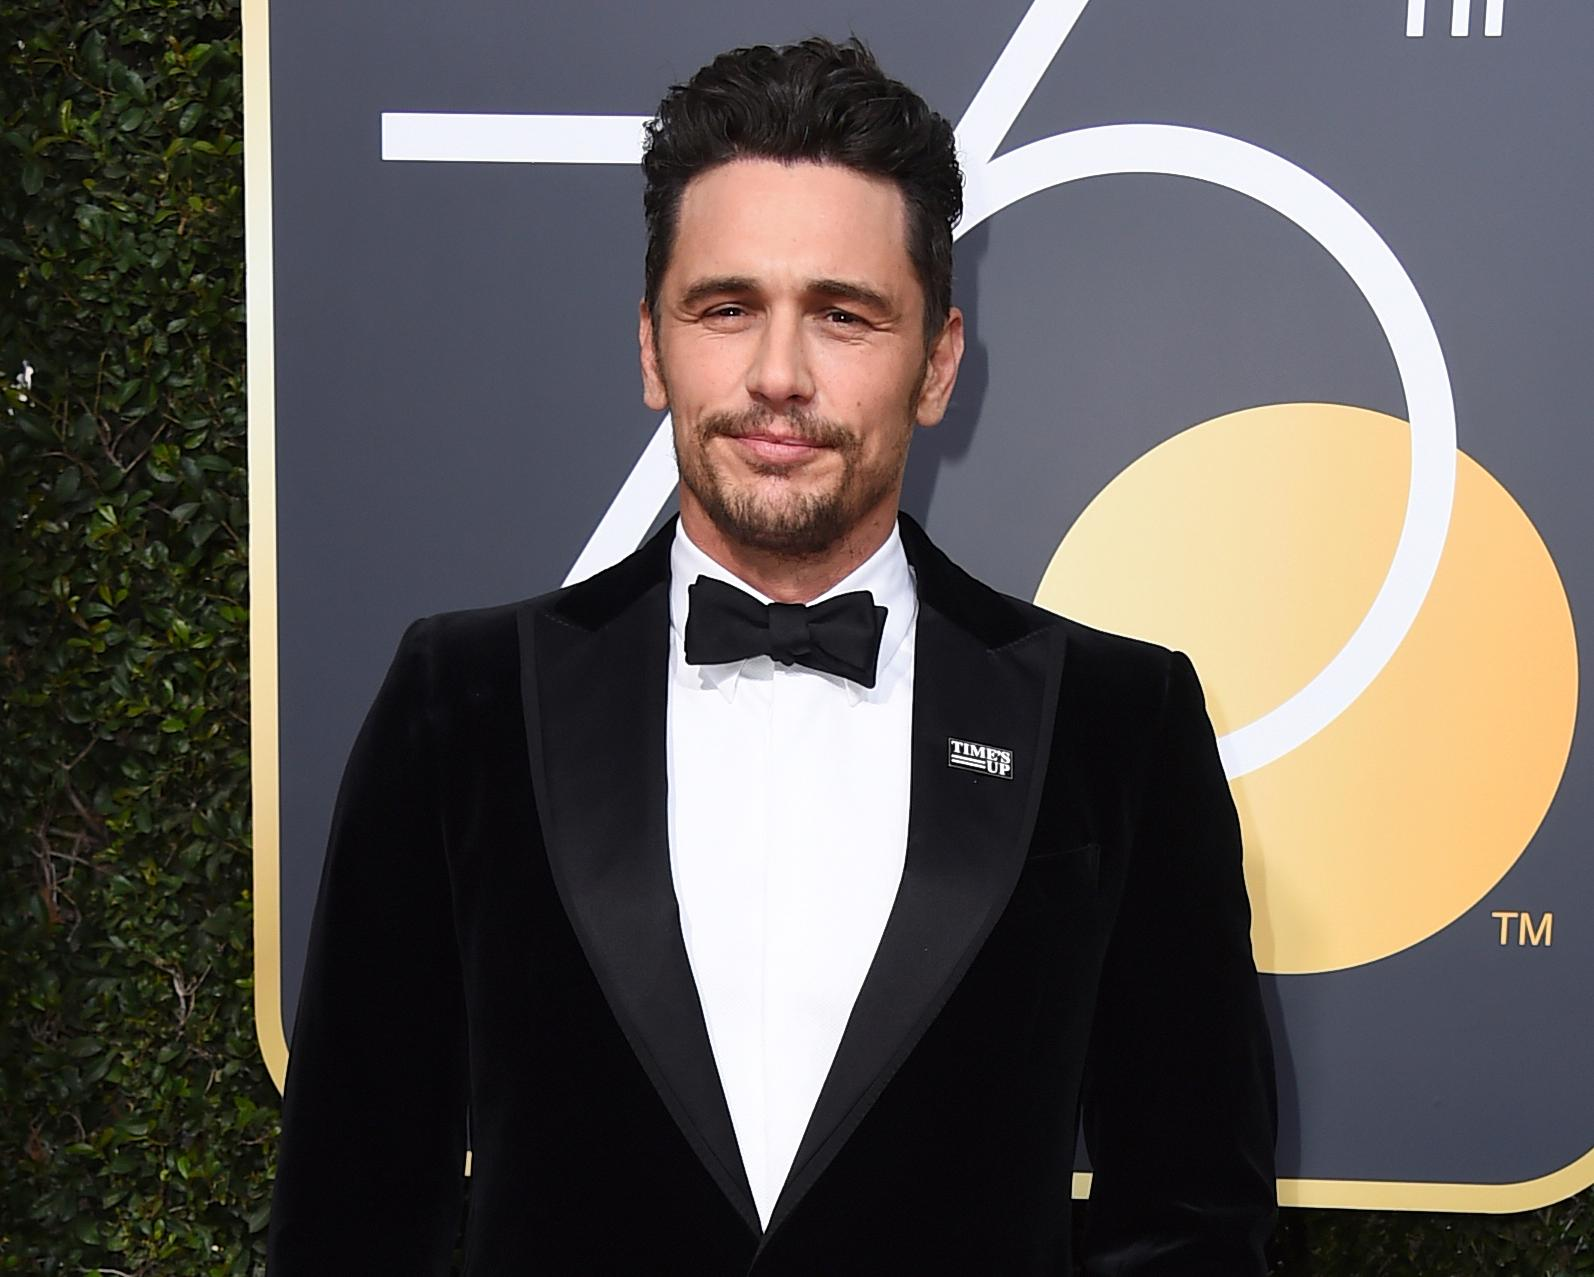 FILE - In this Jan. 7, 2018 file photo, James Franco arrives at the 75th annual Golden Globe Awards in Beverly Hills, Calif. (Photo by Jordan Strauss/Invision/AP, File)